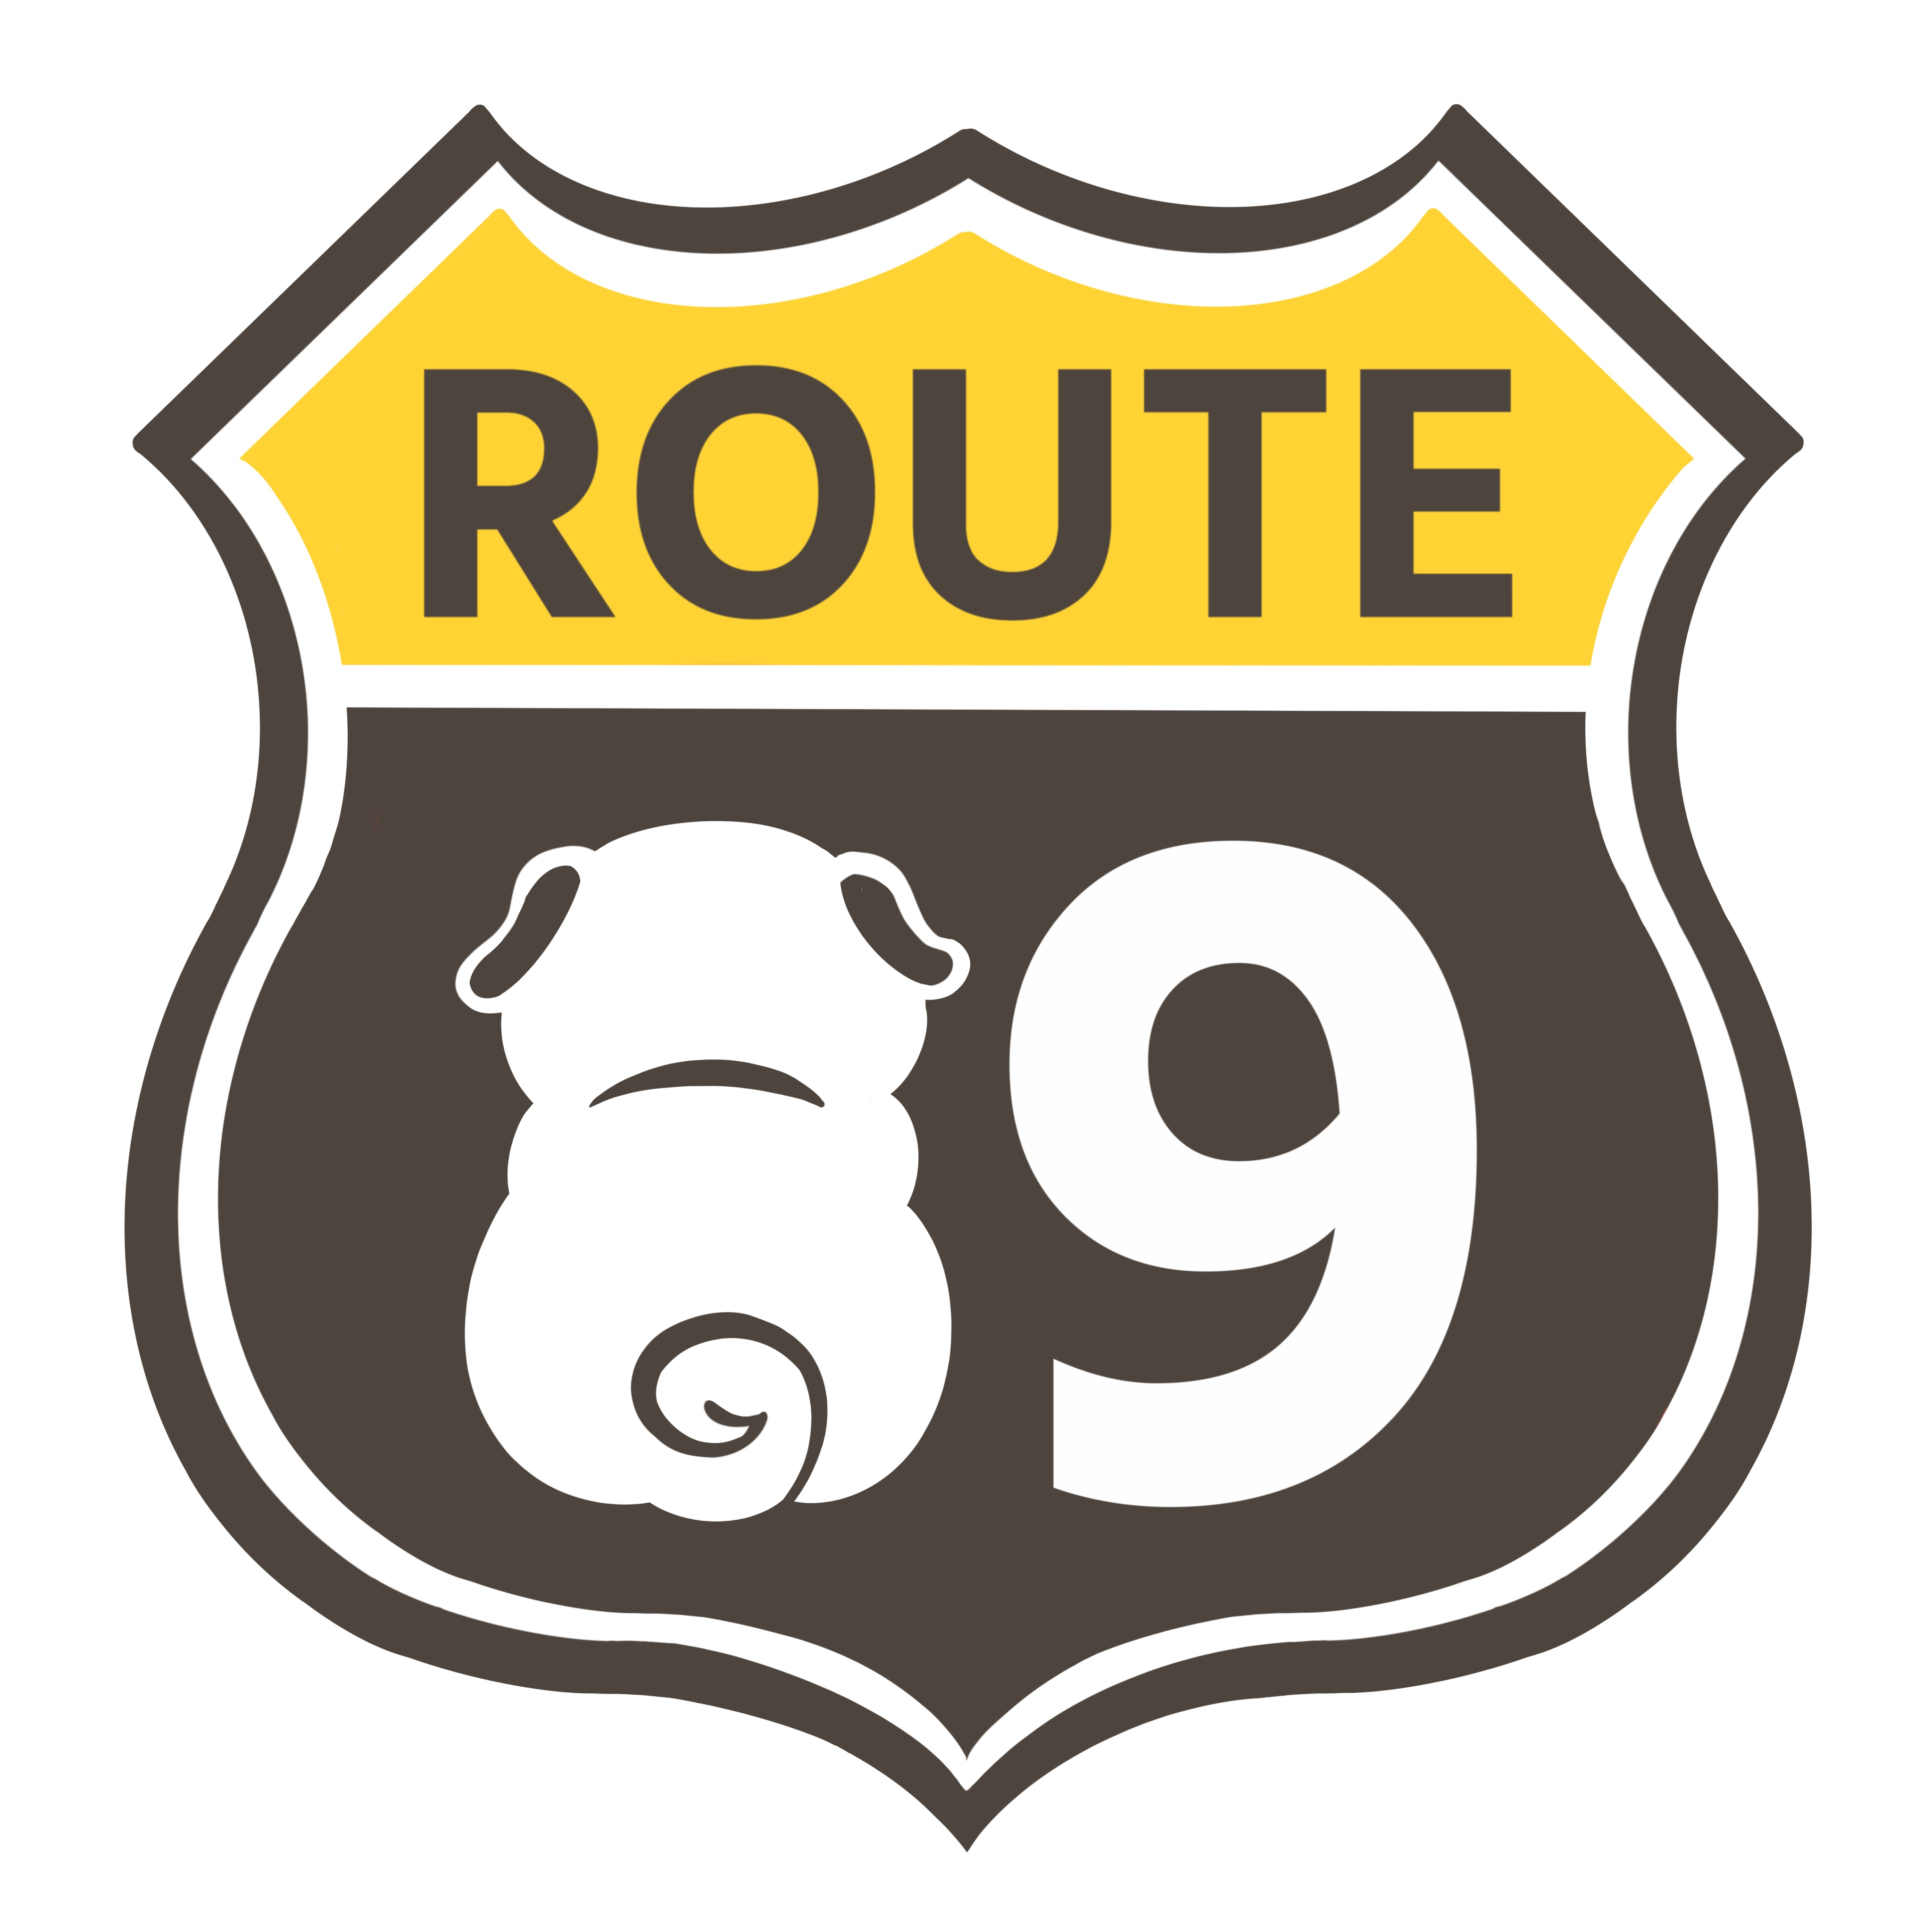 Route89 ステッカー新色!